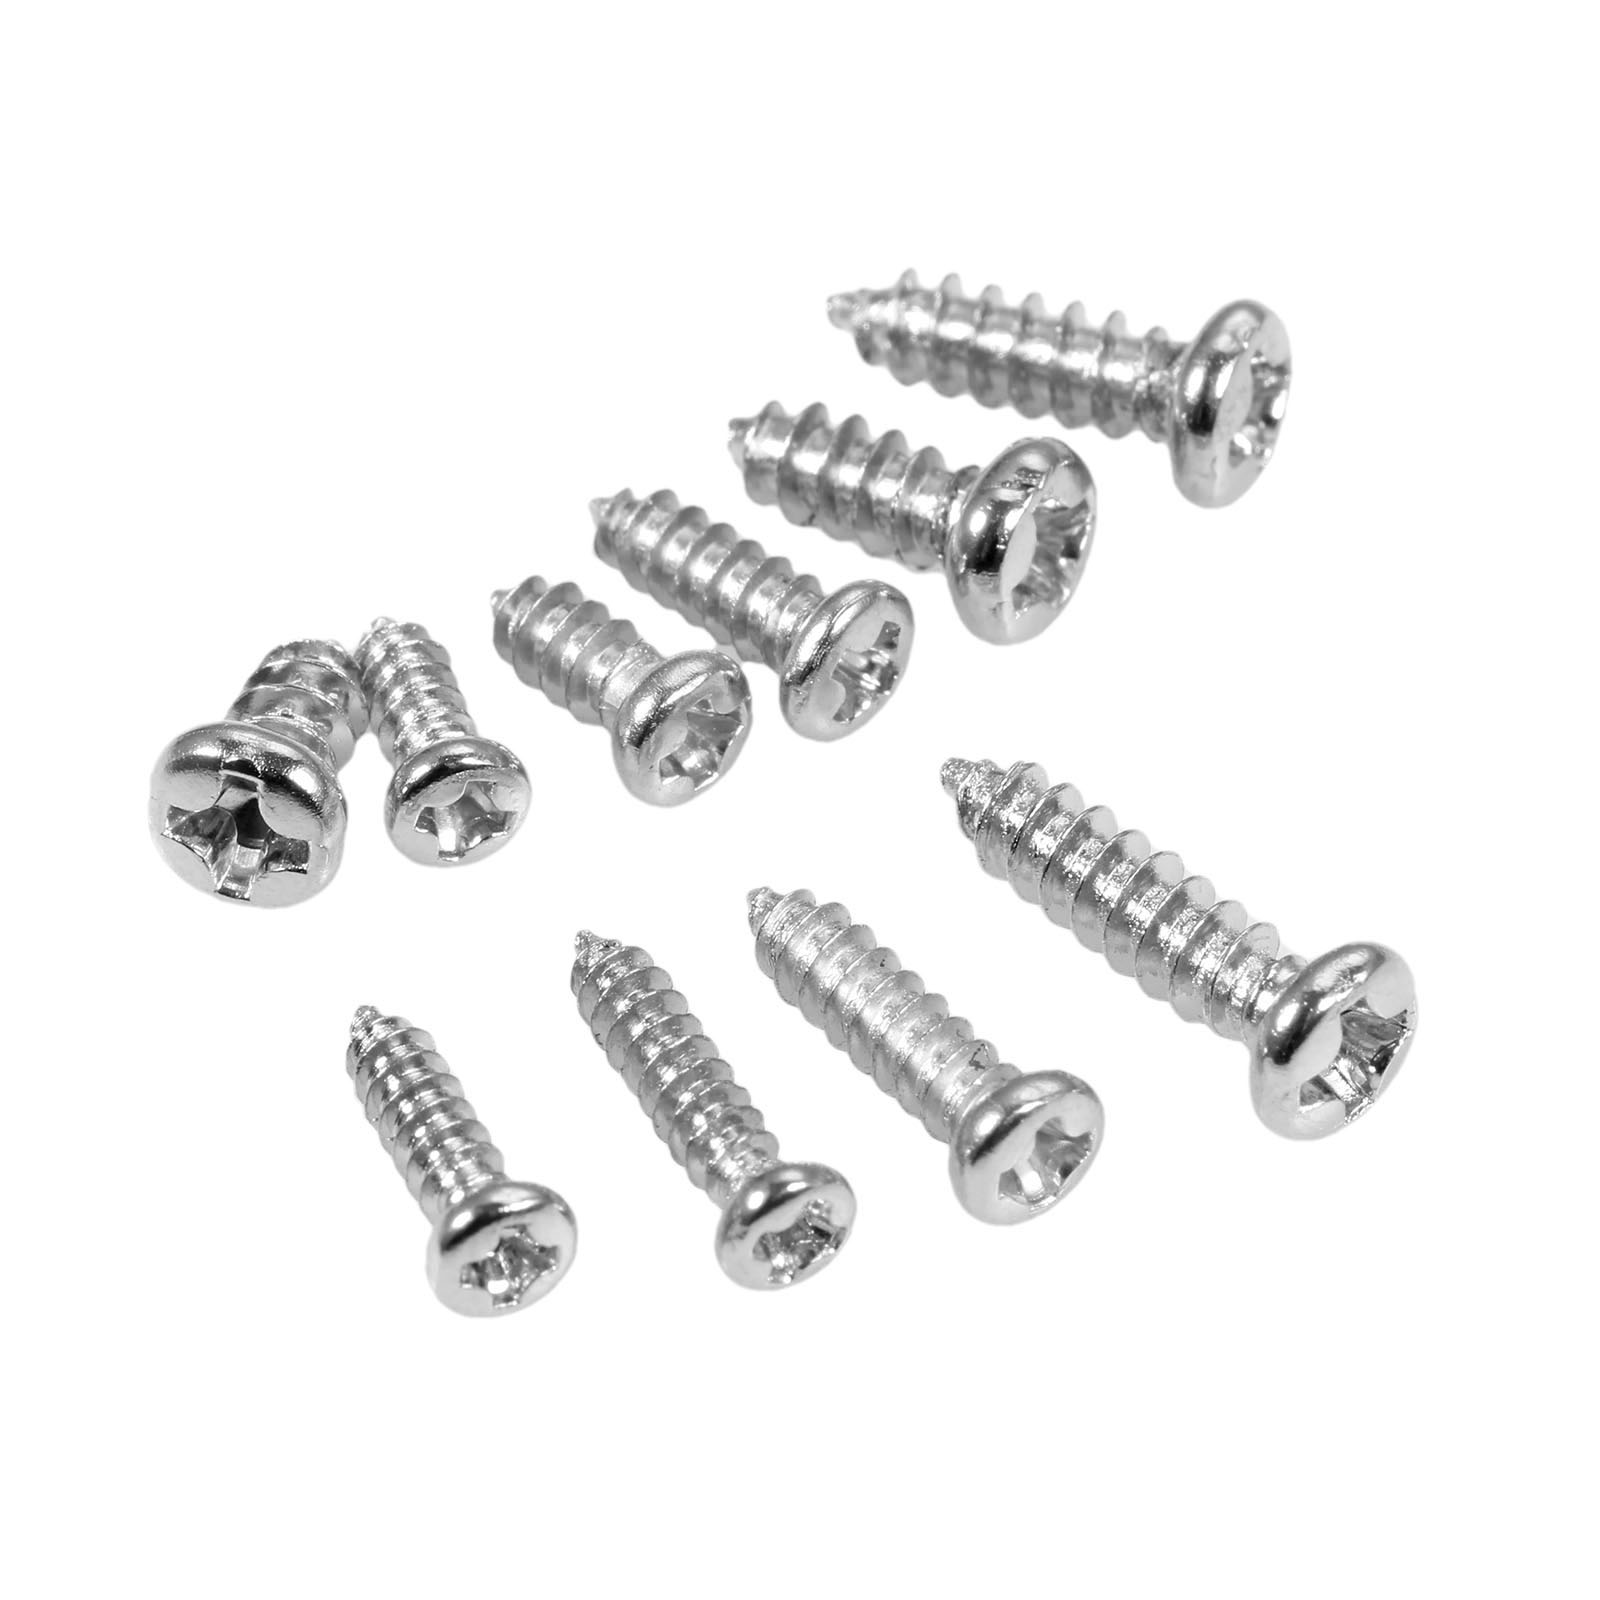 100pcs M2.3 <font><b>M2.6</b></font> M3 Self Tapping Wood <font><b>Screws</b></font> Round <font><b>Screw</b></font> 304 Stainless Steel Phillips Cross Pan Head <font><b>Screws</b></font> 6/8/10/12mm image